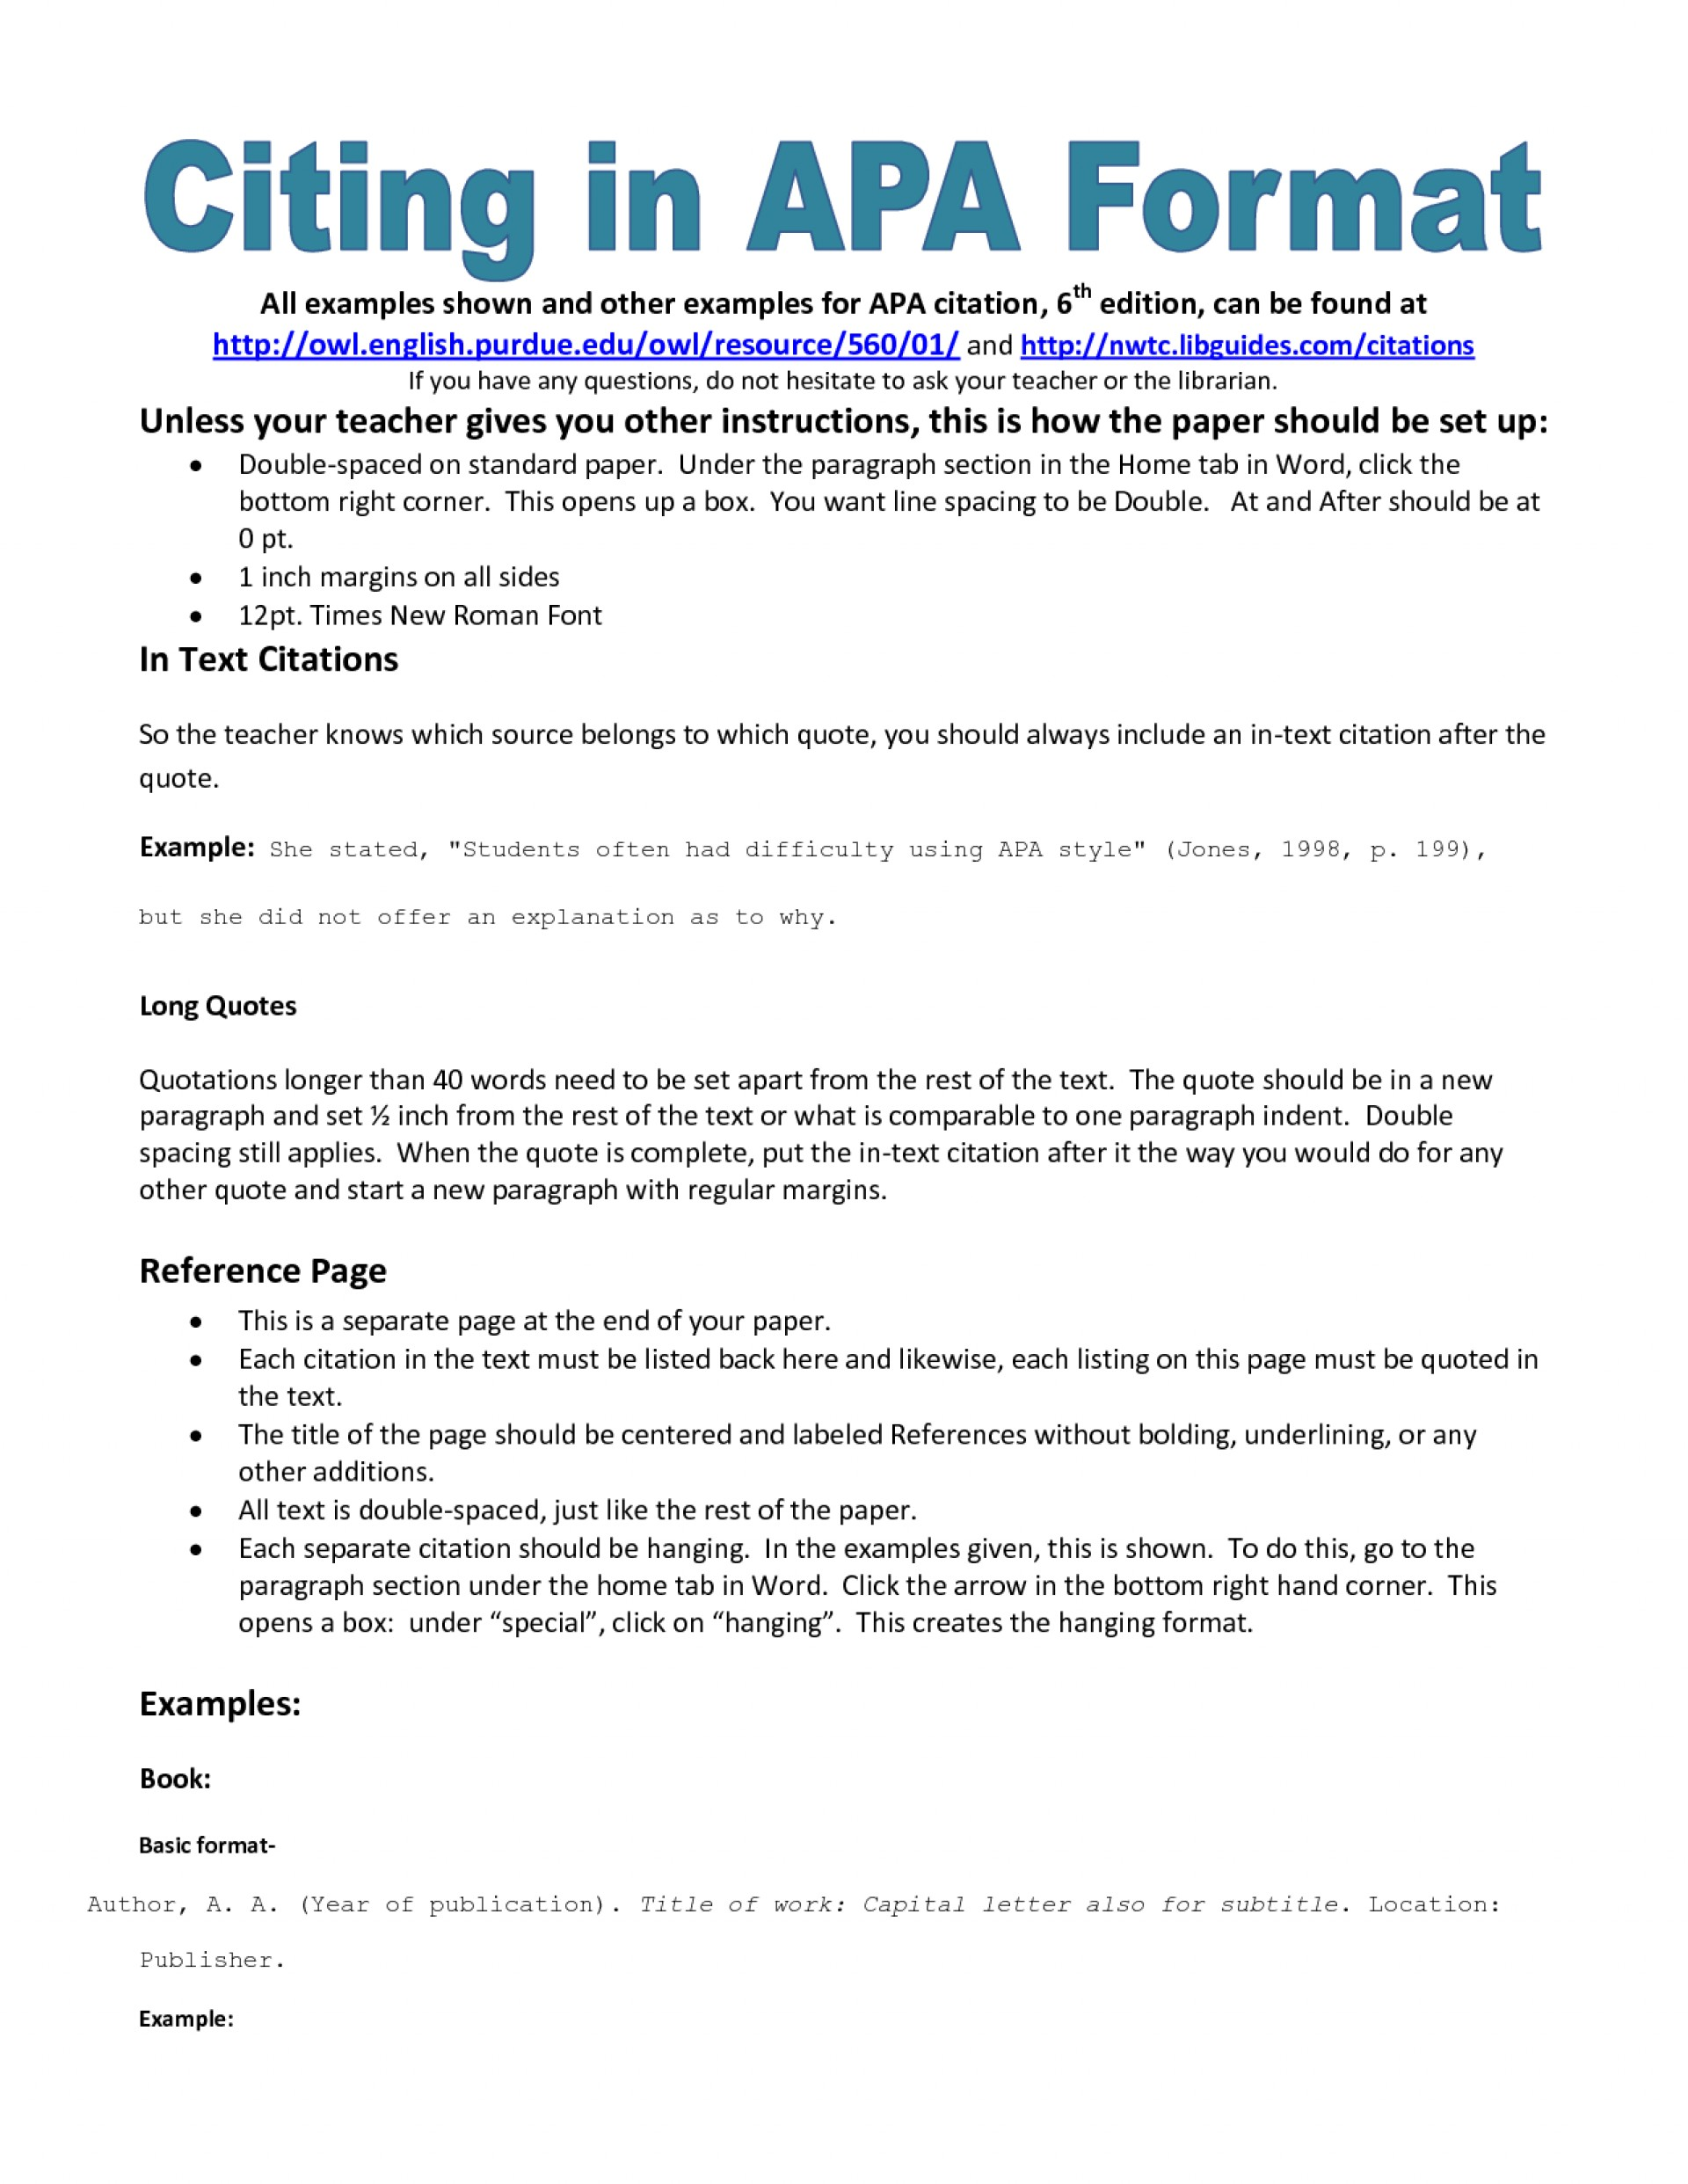 010 Apa Format Style For Research Paper Unusual Sample Papers In Writing Citing 1920